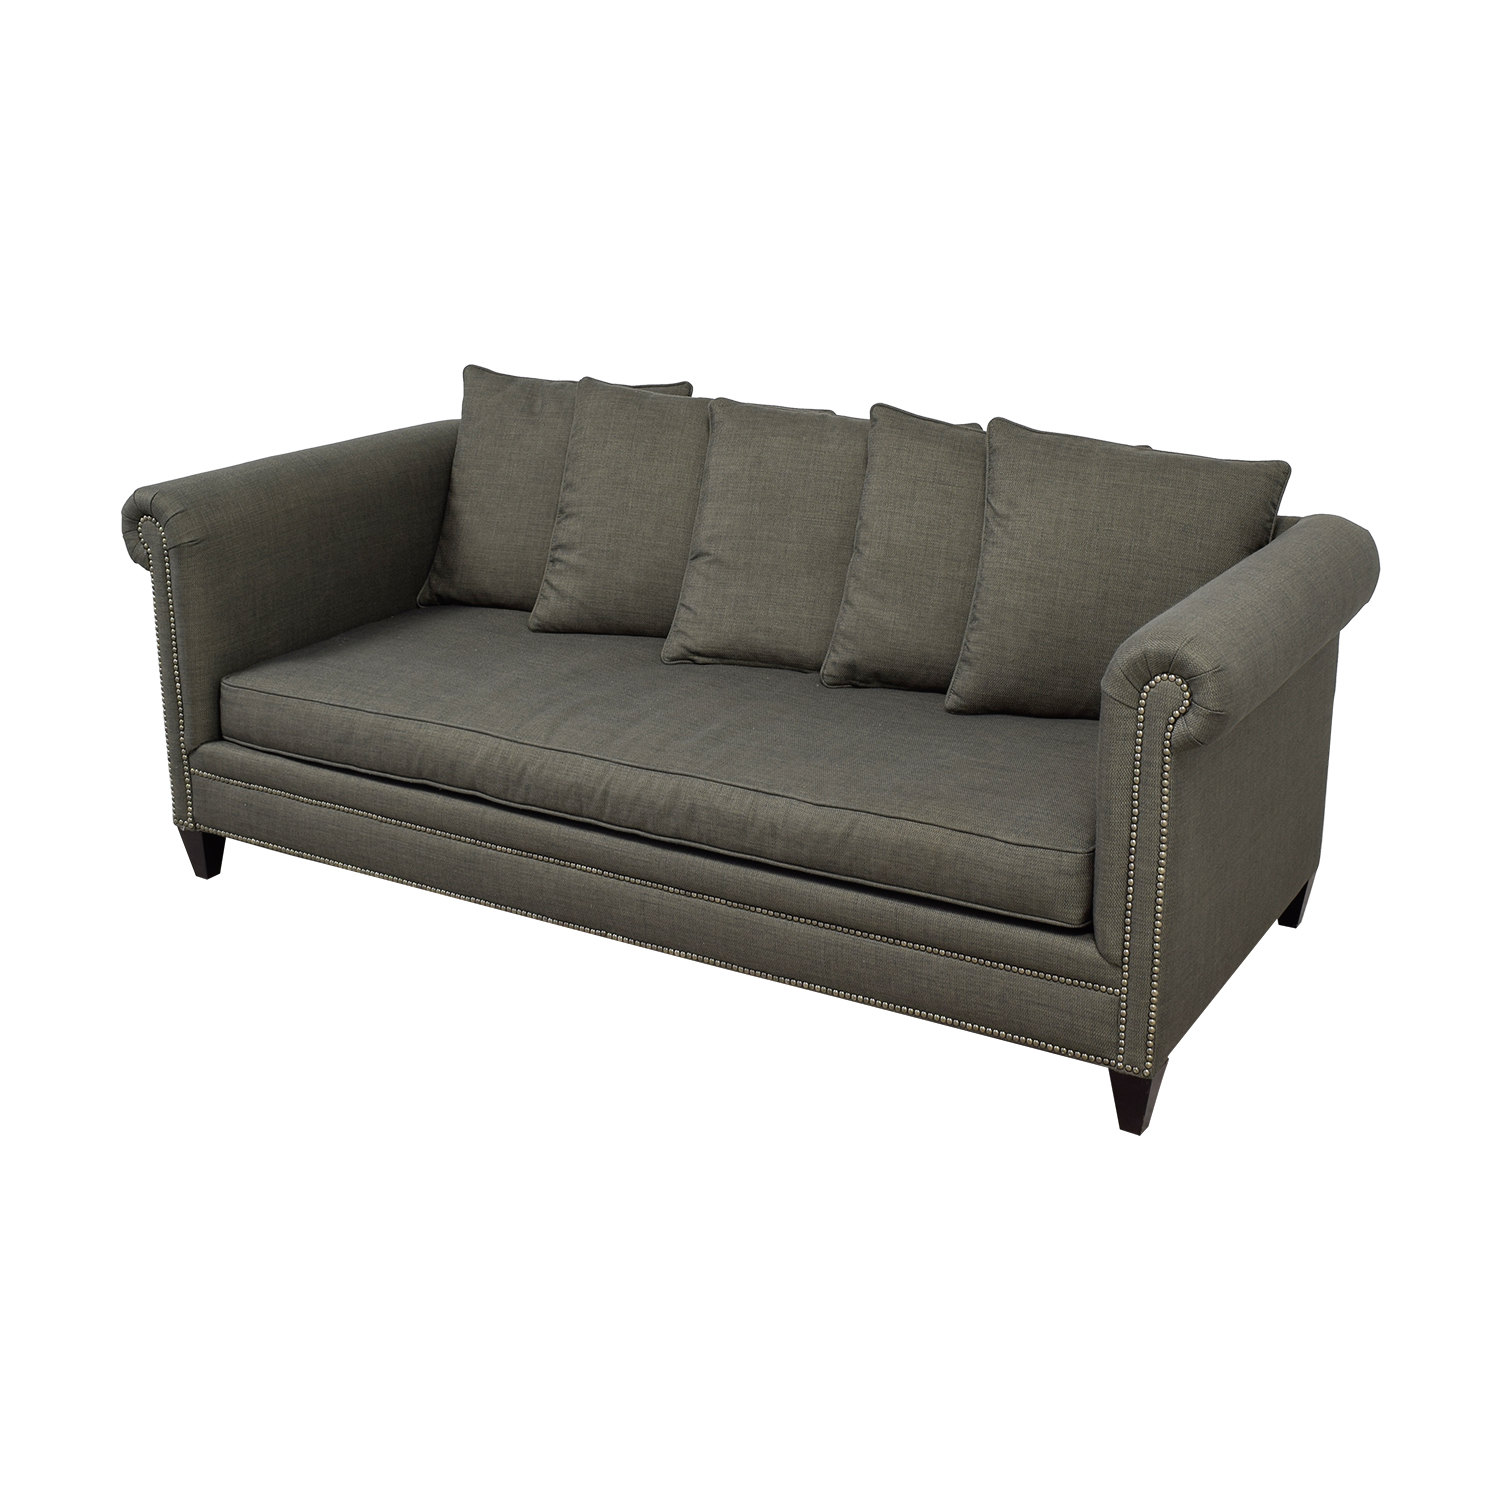 Crate And Barrel Couch